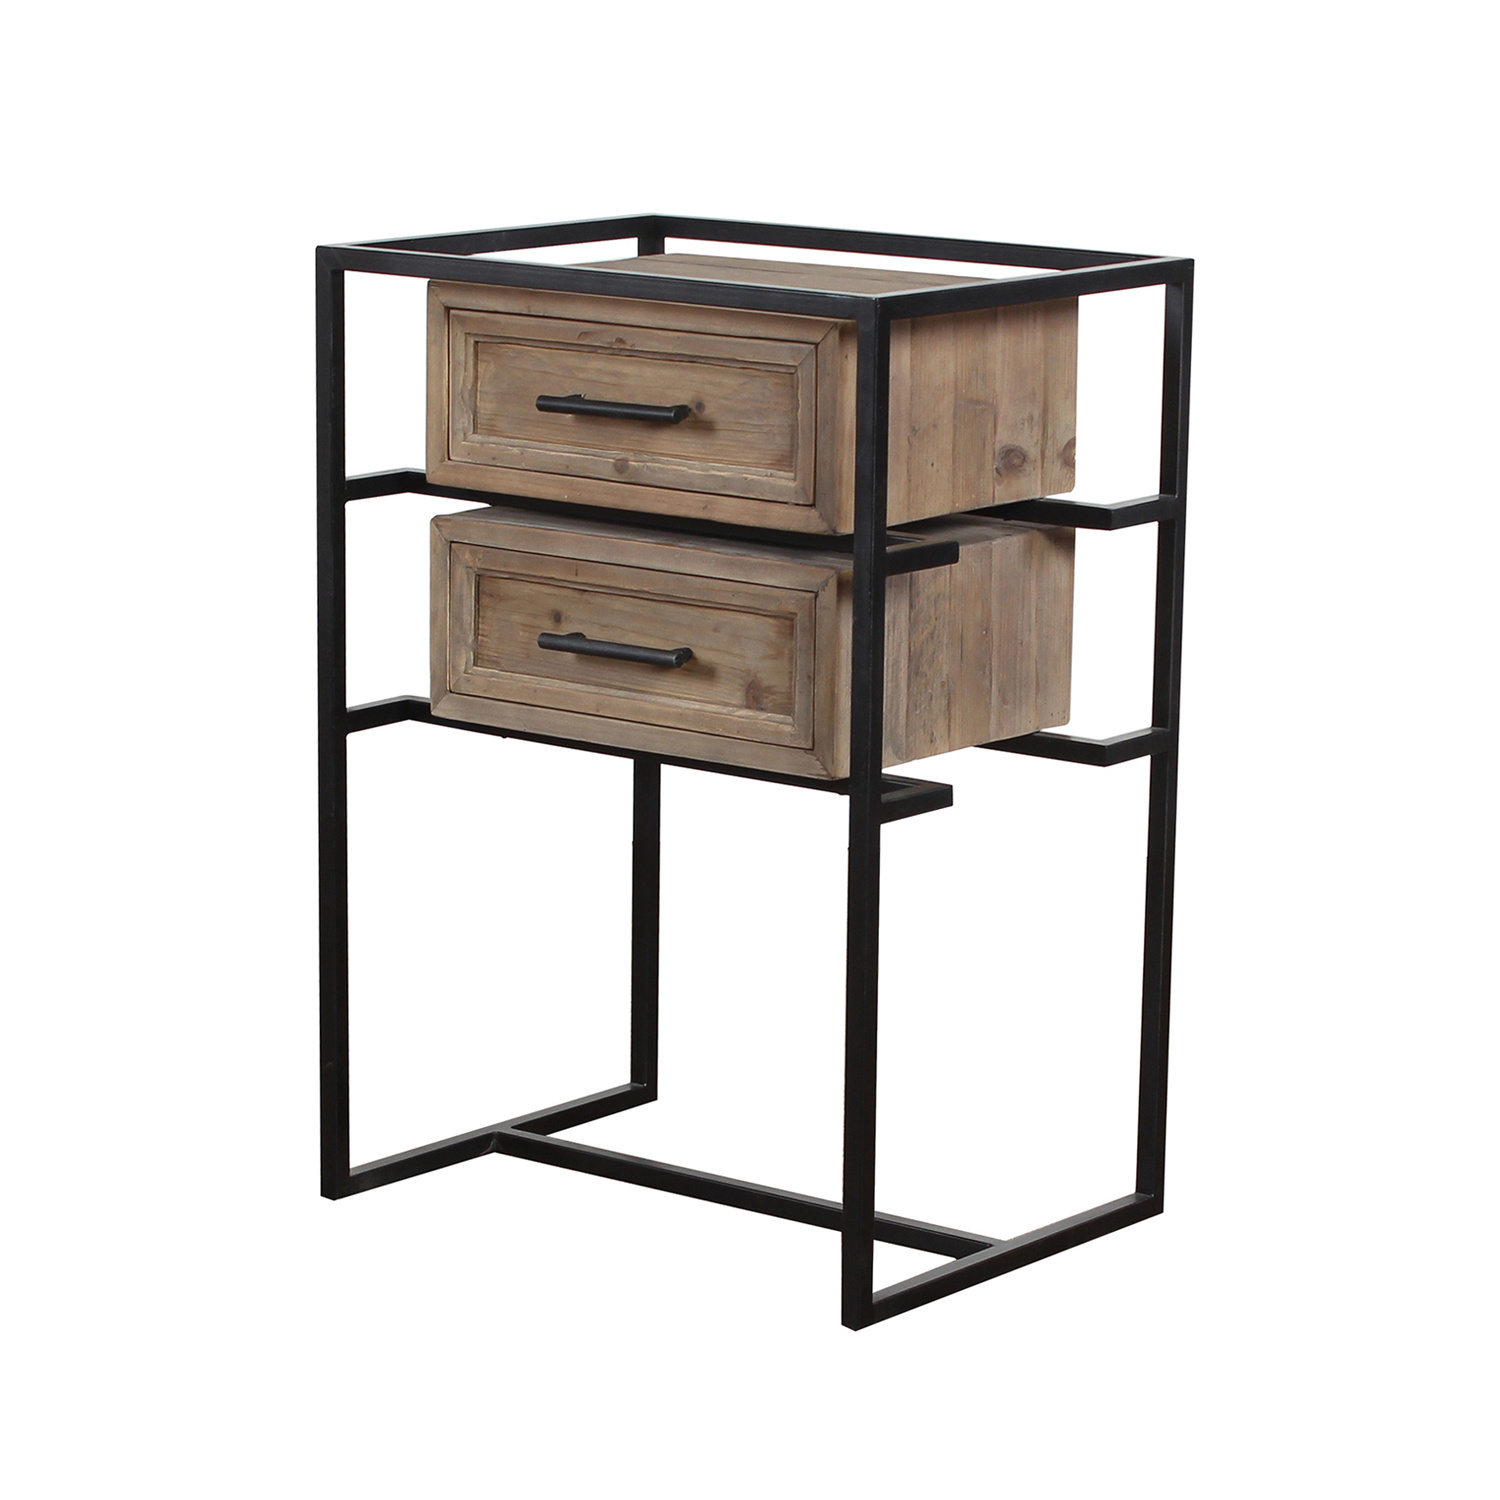 China Retro Industrial Bedside Table Vintage Nightstand